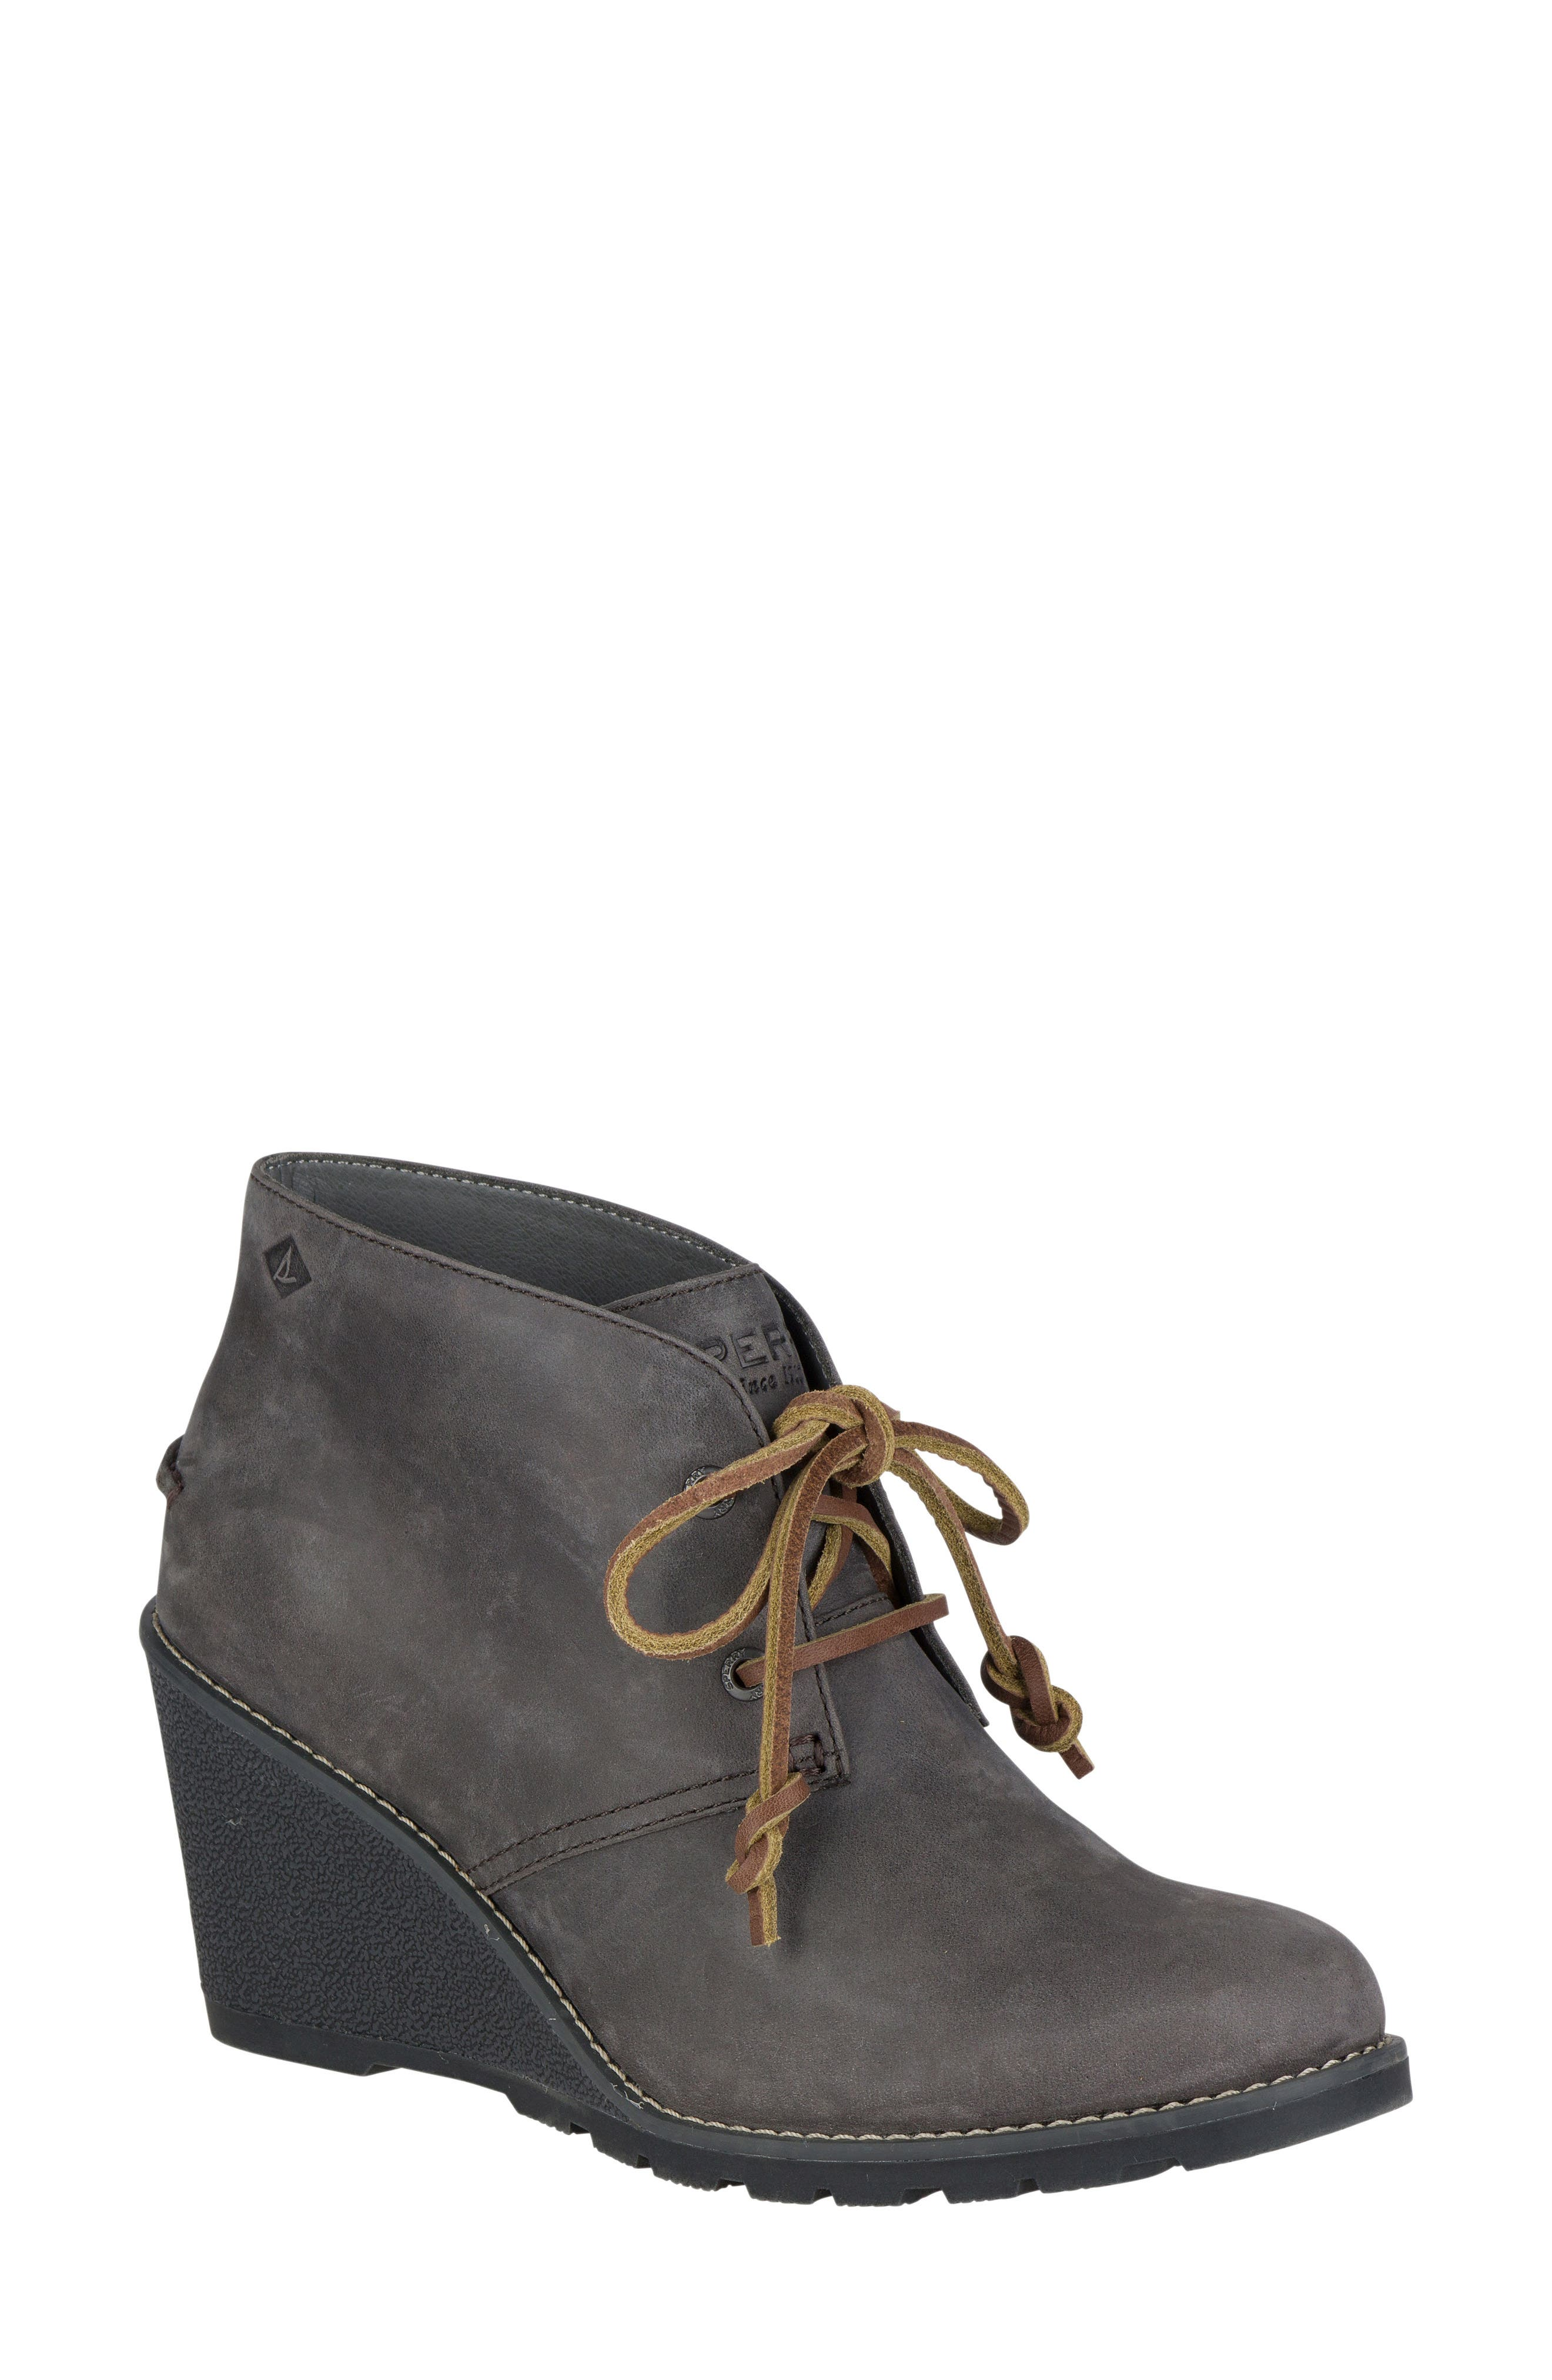 Alternate Image 1 Selected - Sperry Celeste Lace-Up Bootie (Women)